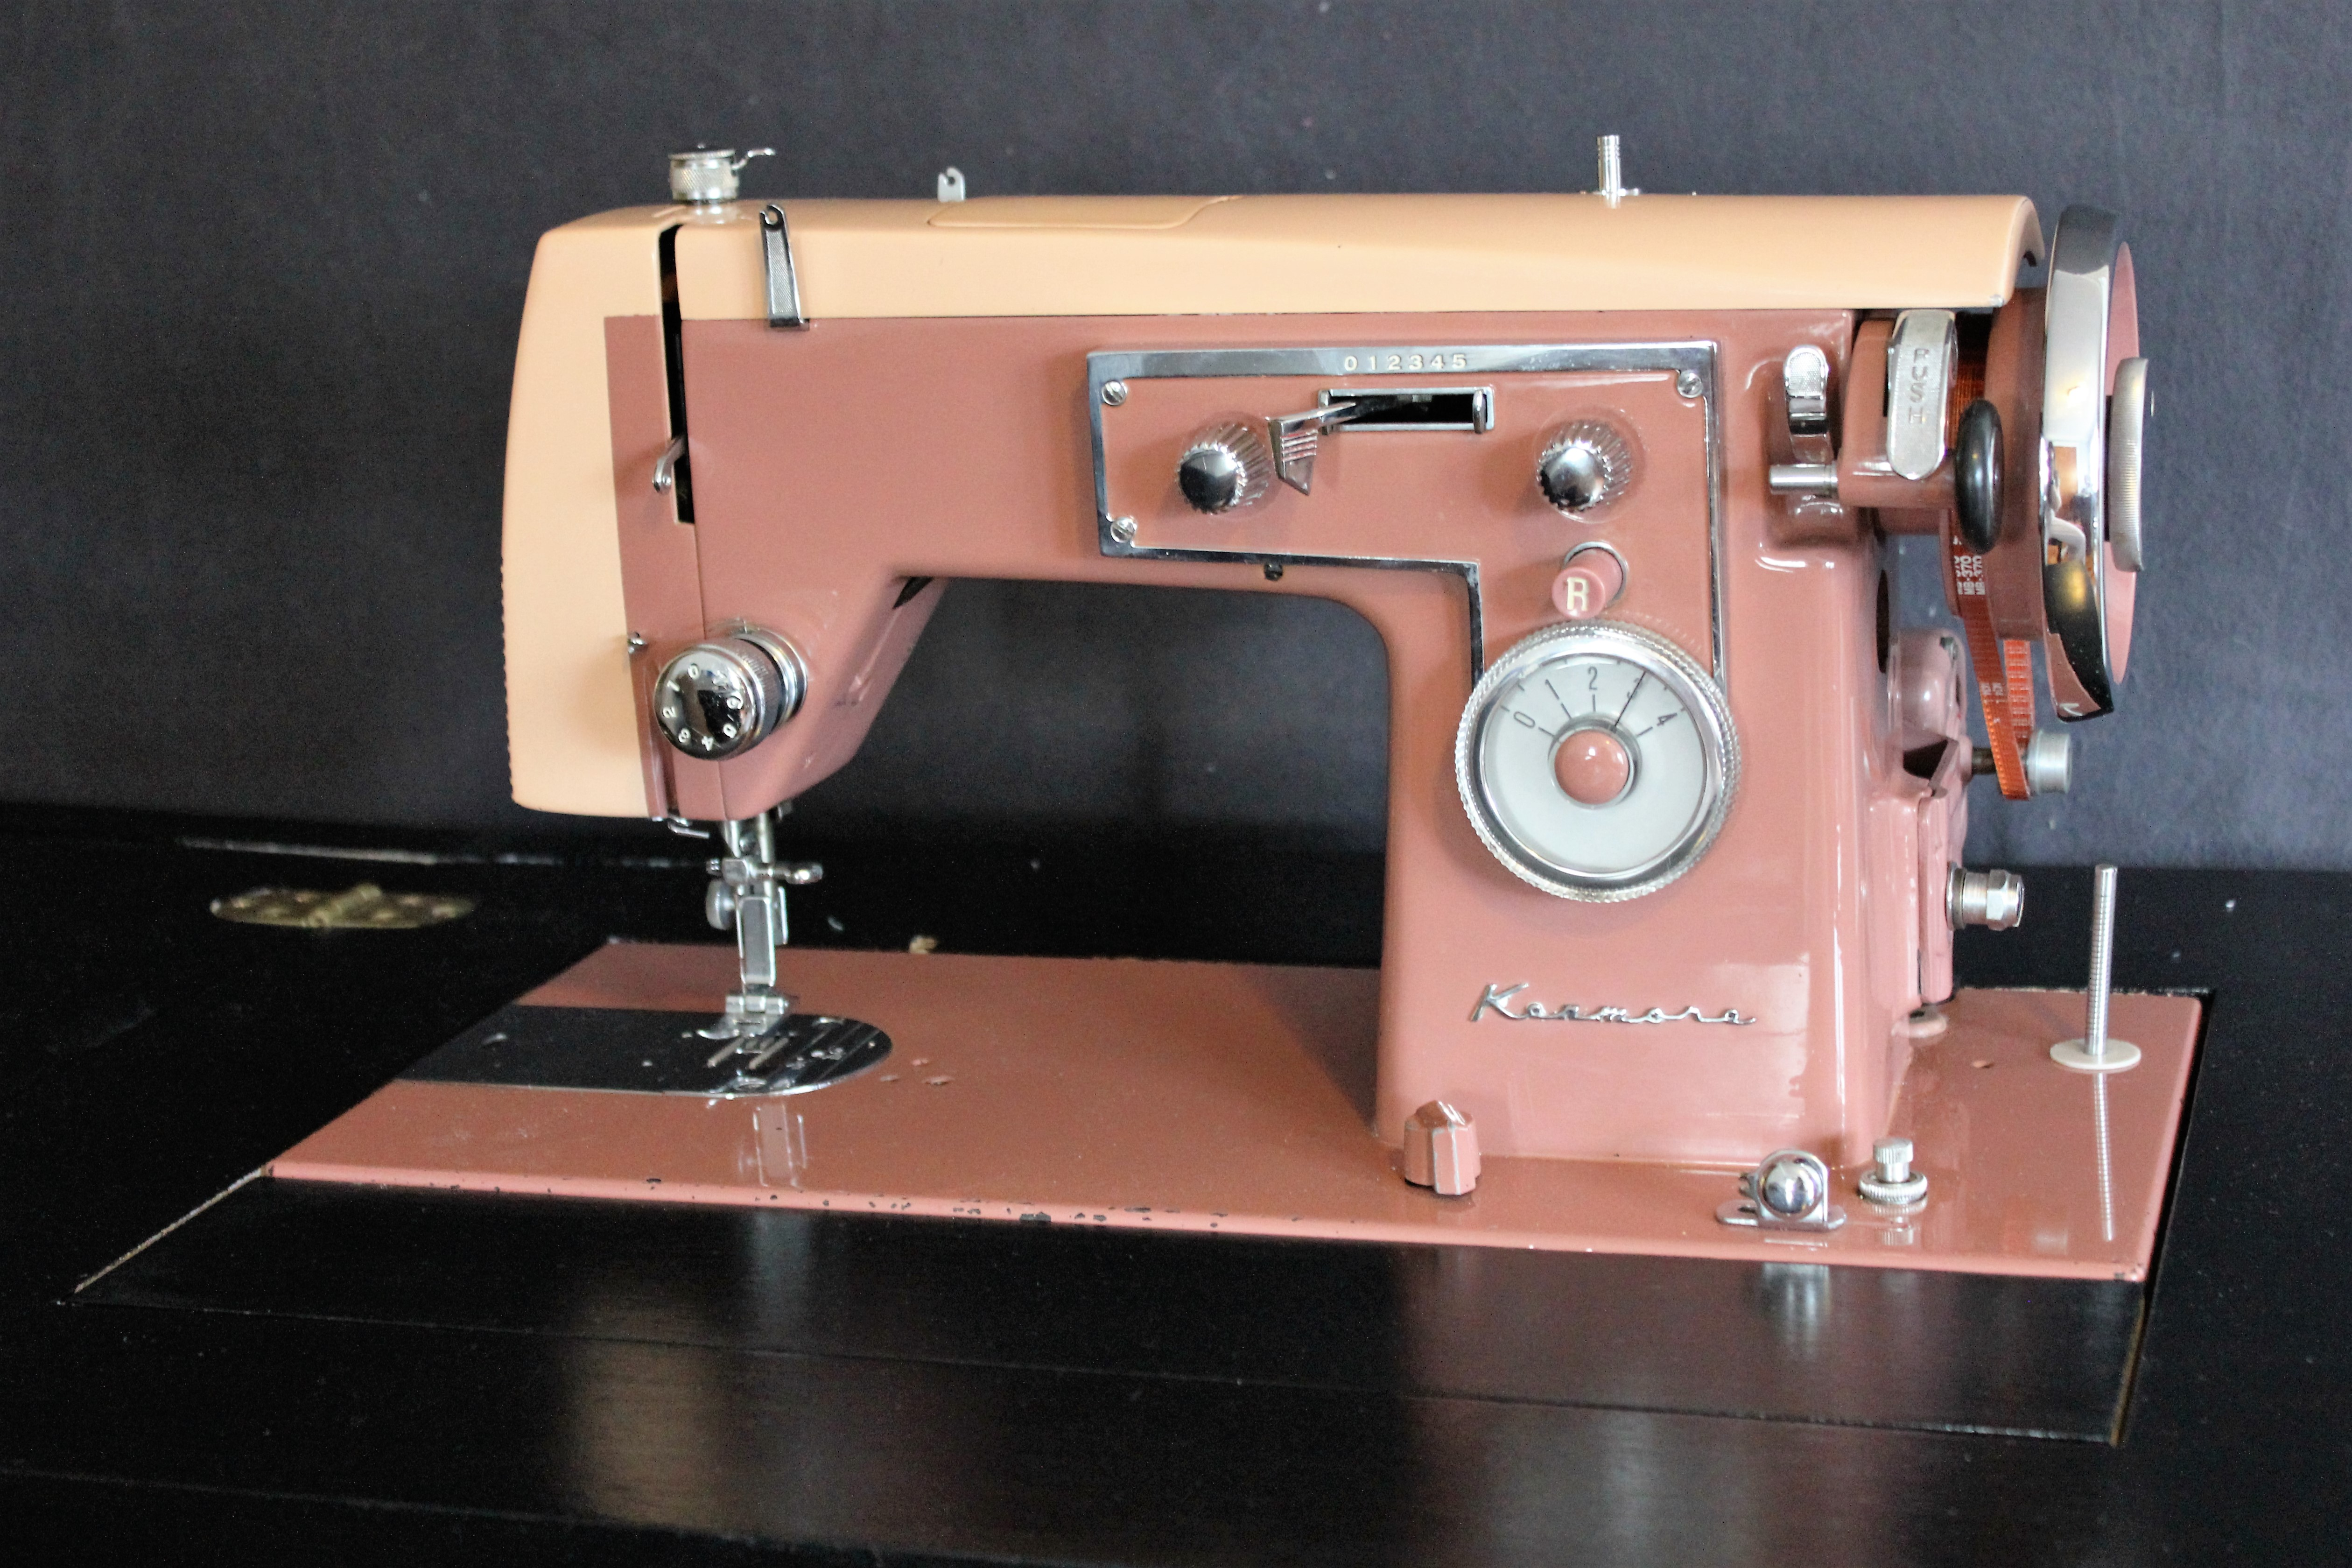 kenmore sewing machine models. on the work bench: kenmore 47 sewing machine models m